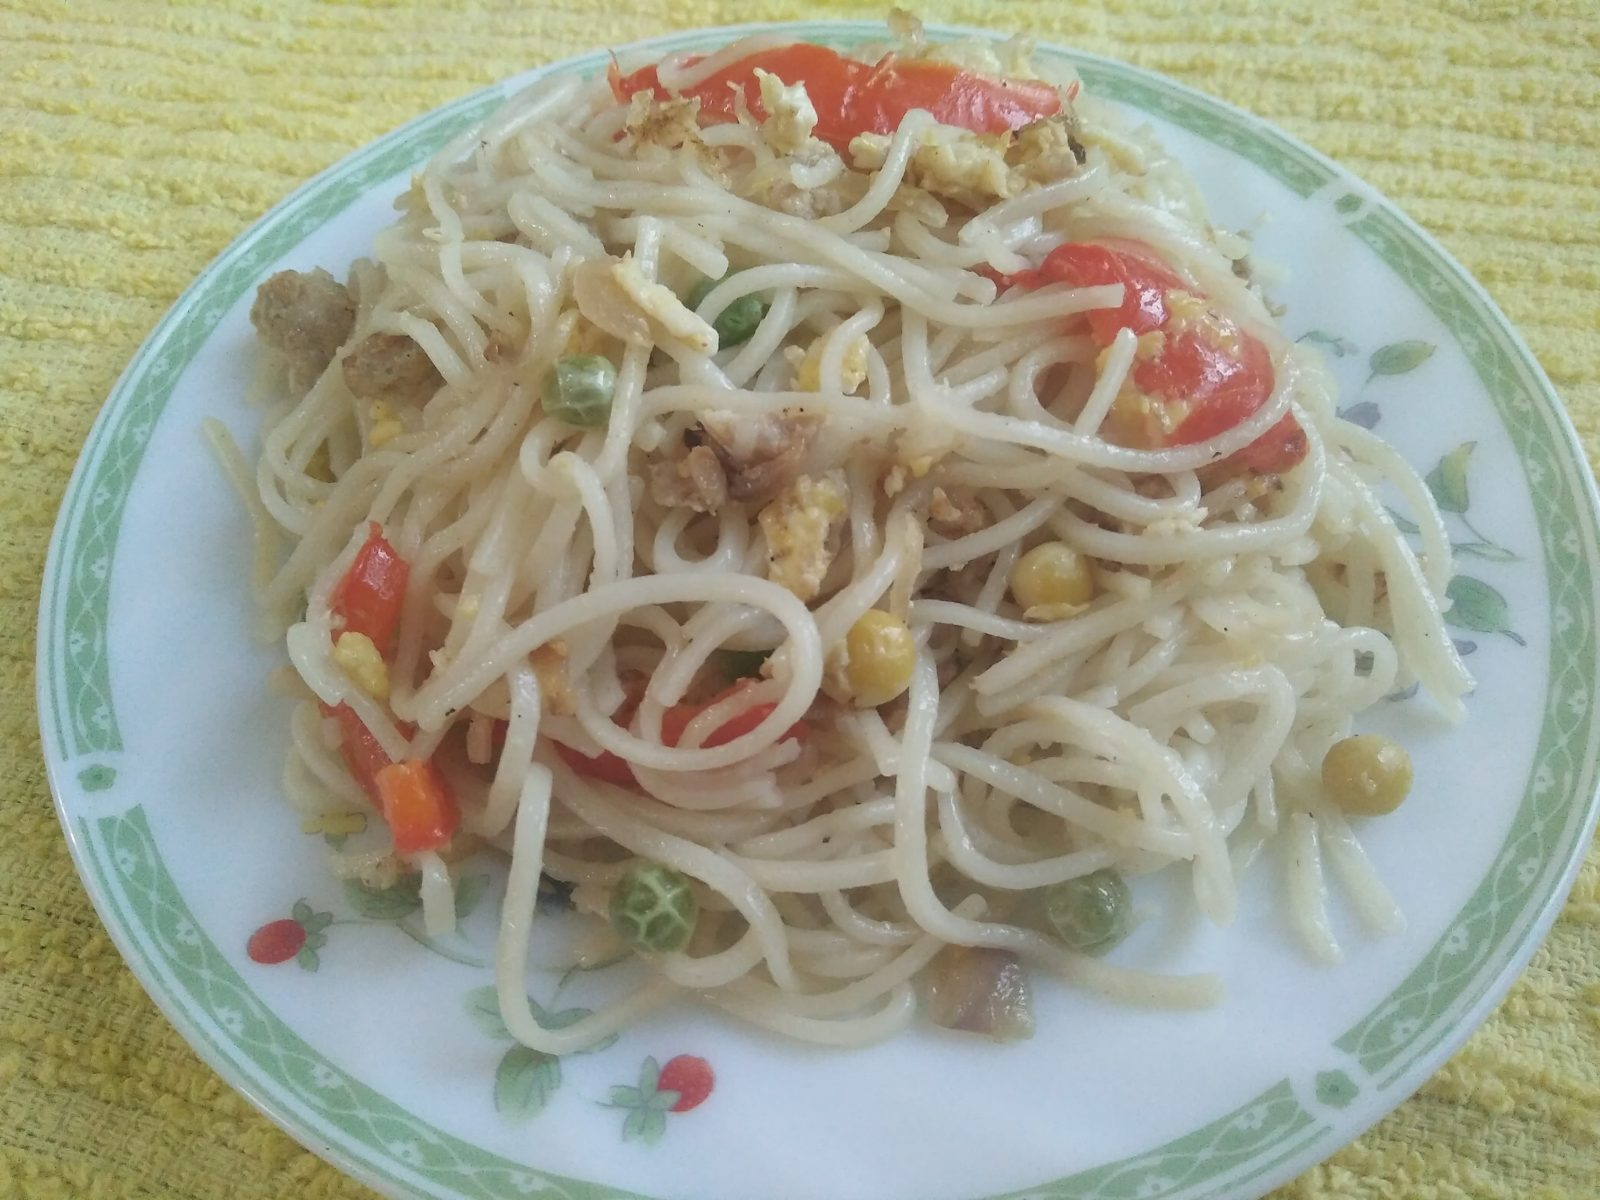 Noodles with Chicken & Vegetable from Shahin's Kitchen